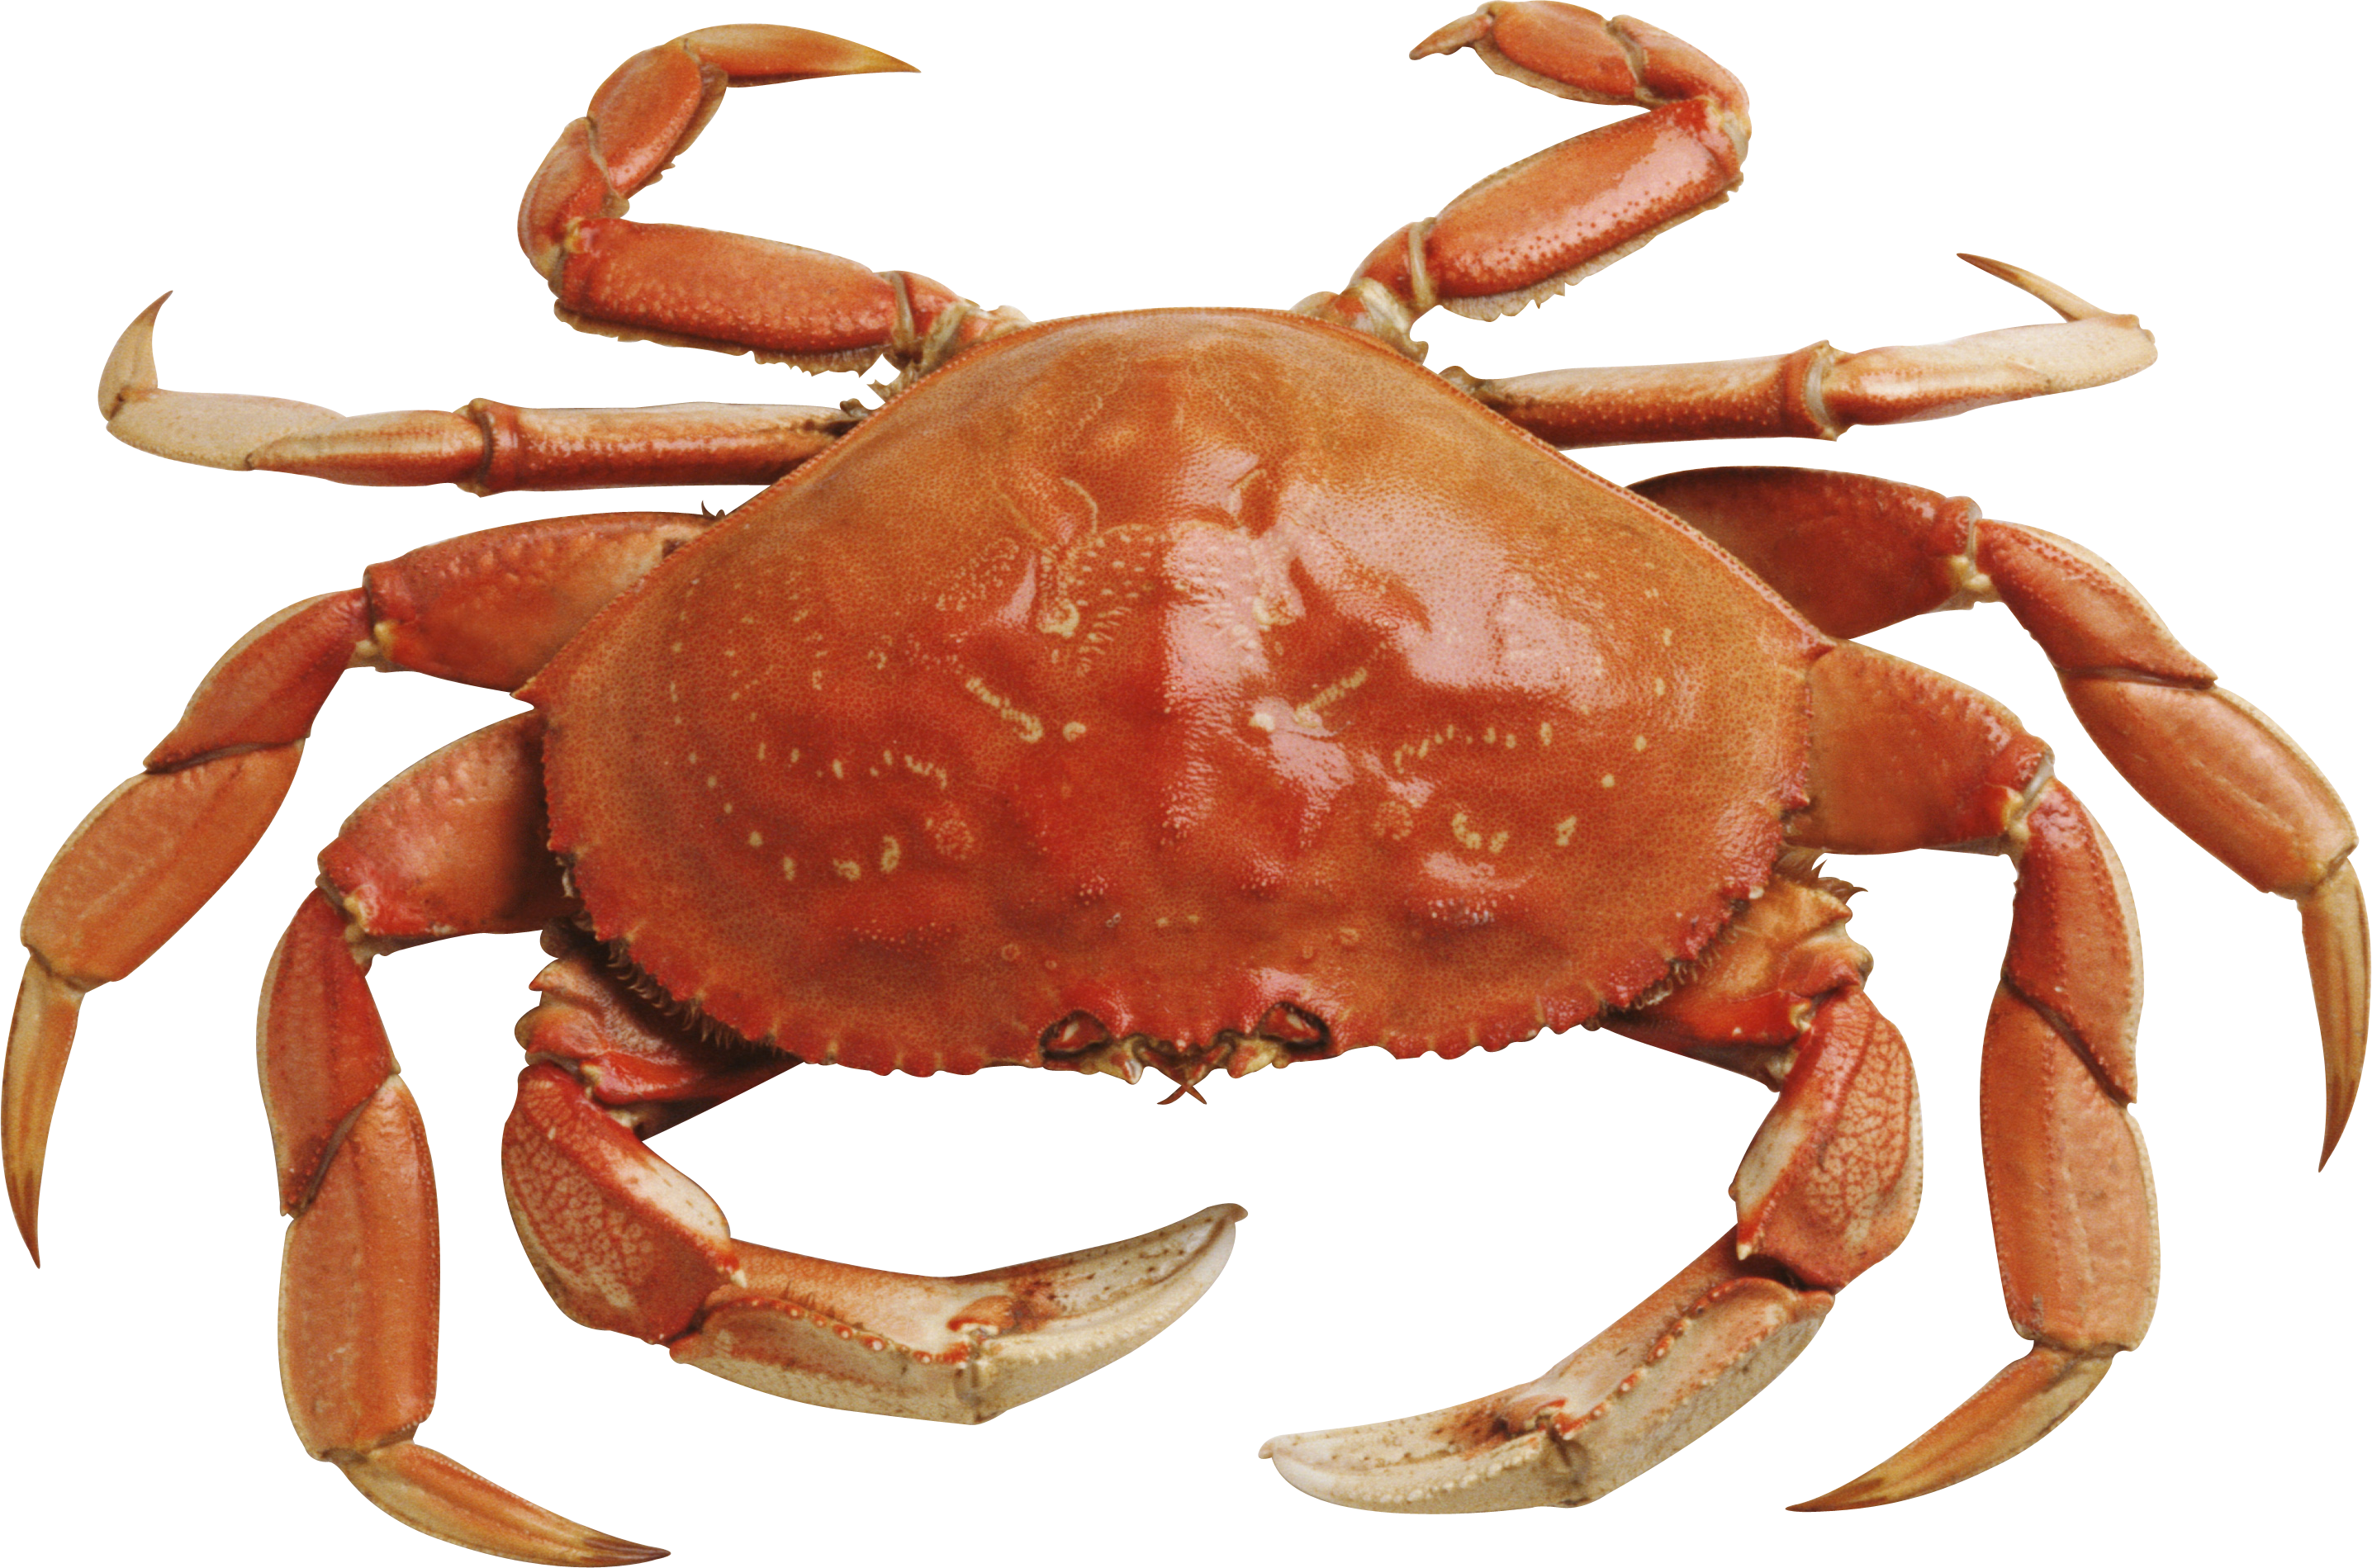 Crab png. Images free dowbload